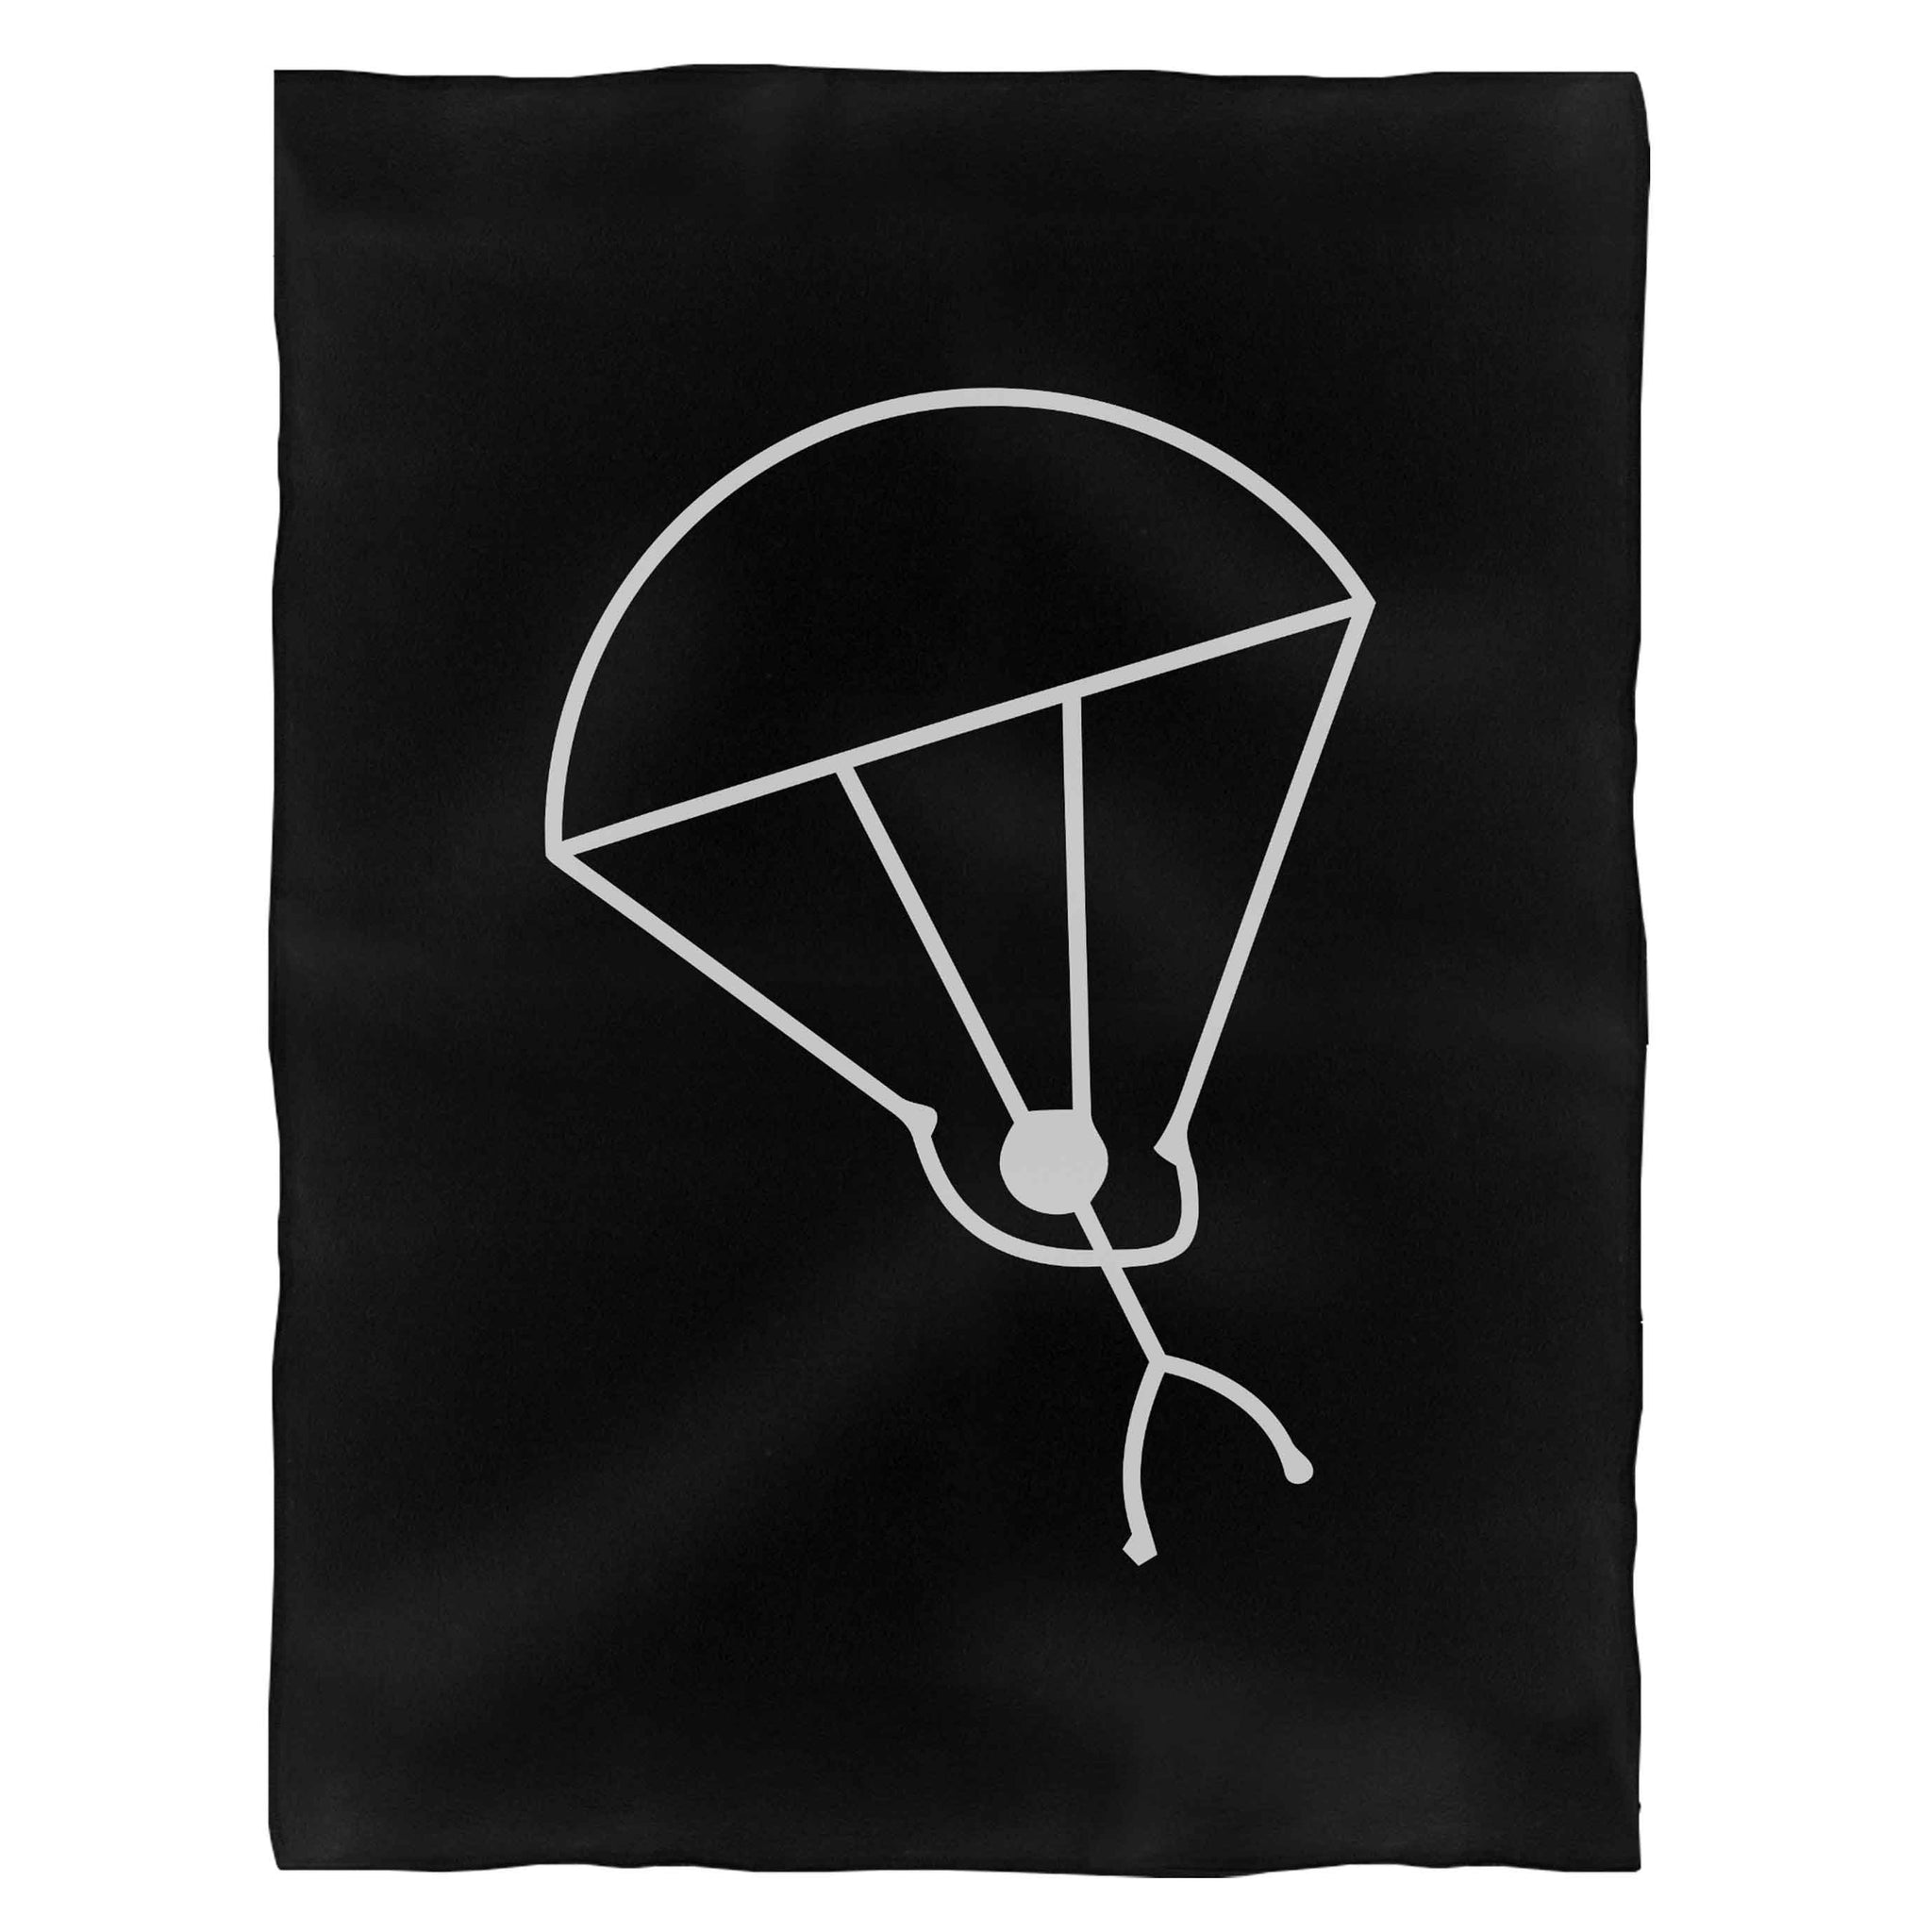 Stick Man Skydiving Fleece Blanket